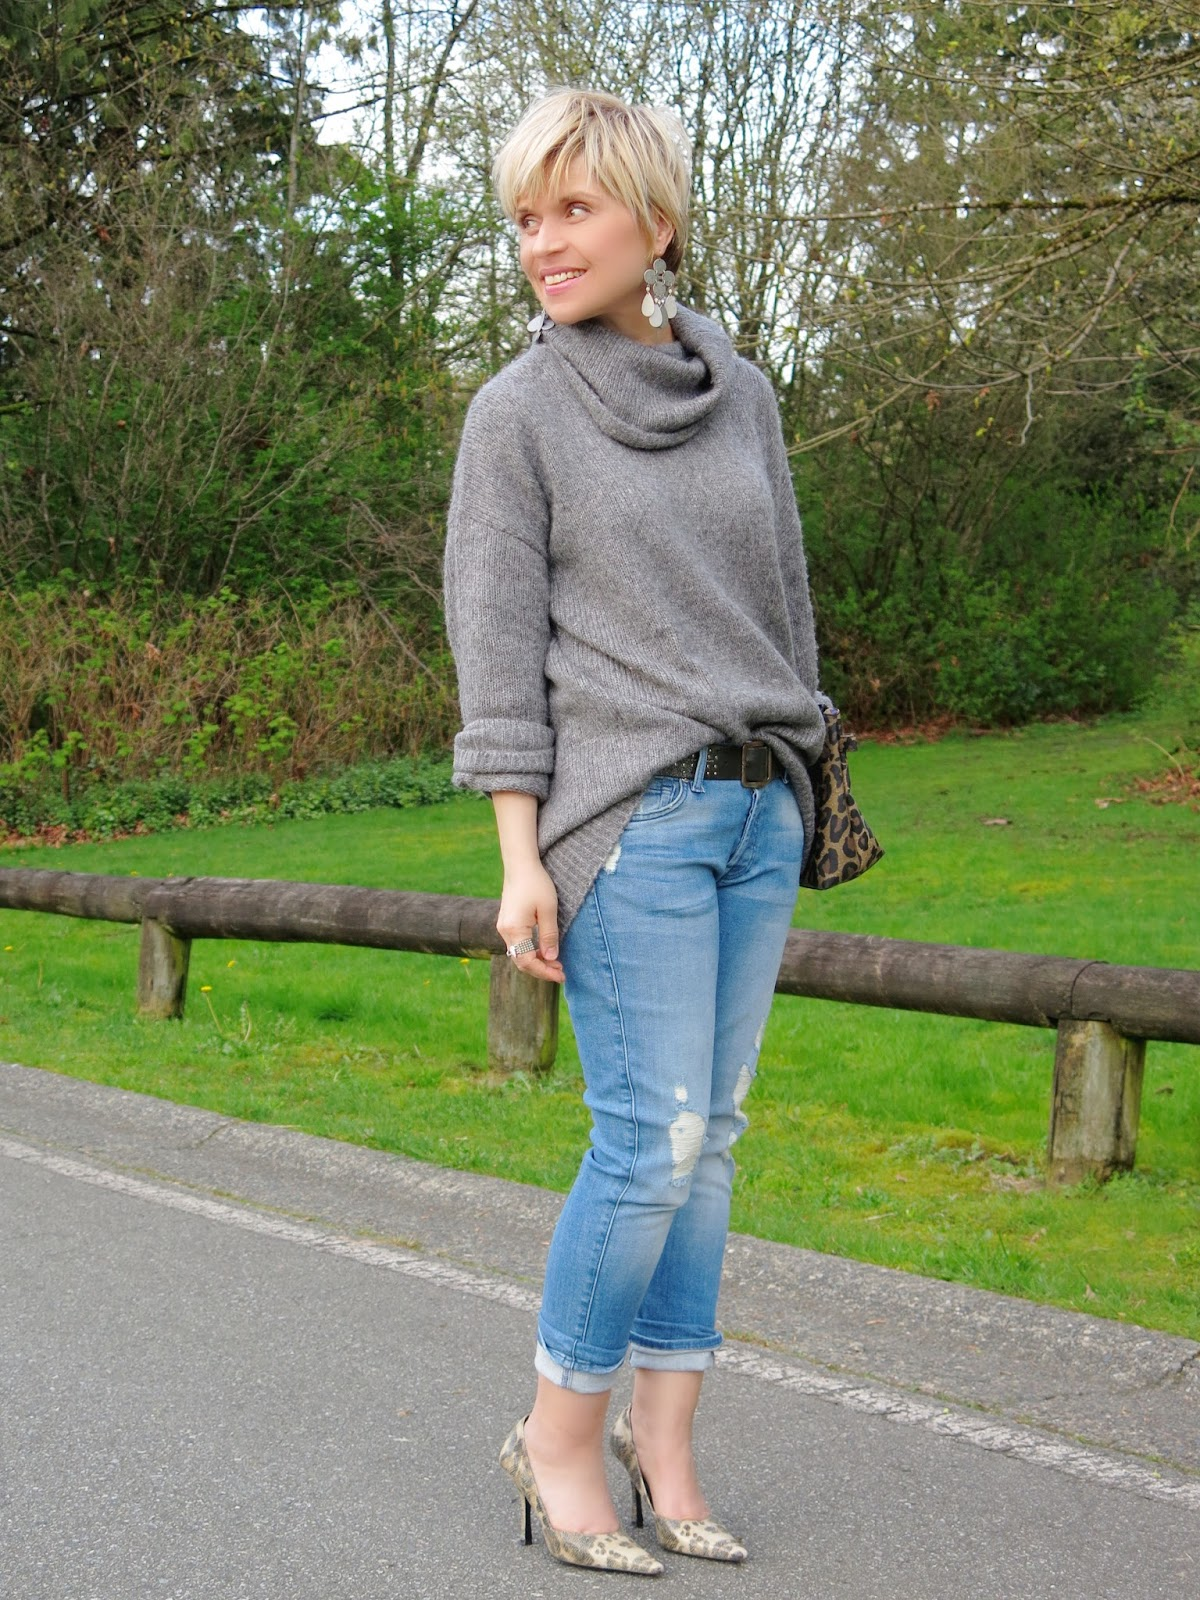 styling an oversized grey sweater with boyfriend jeans